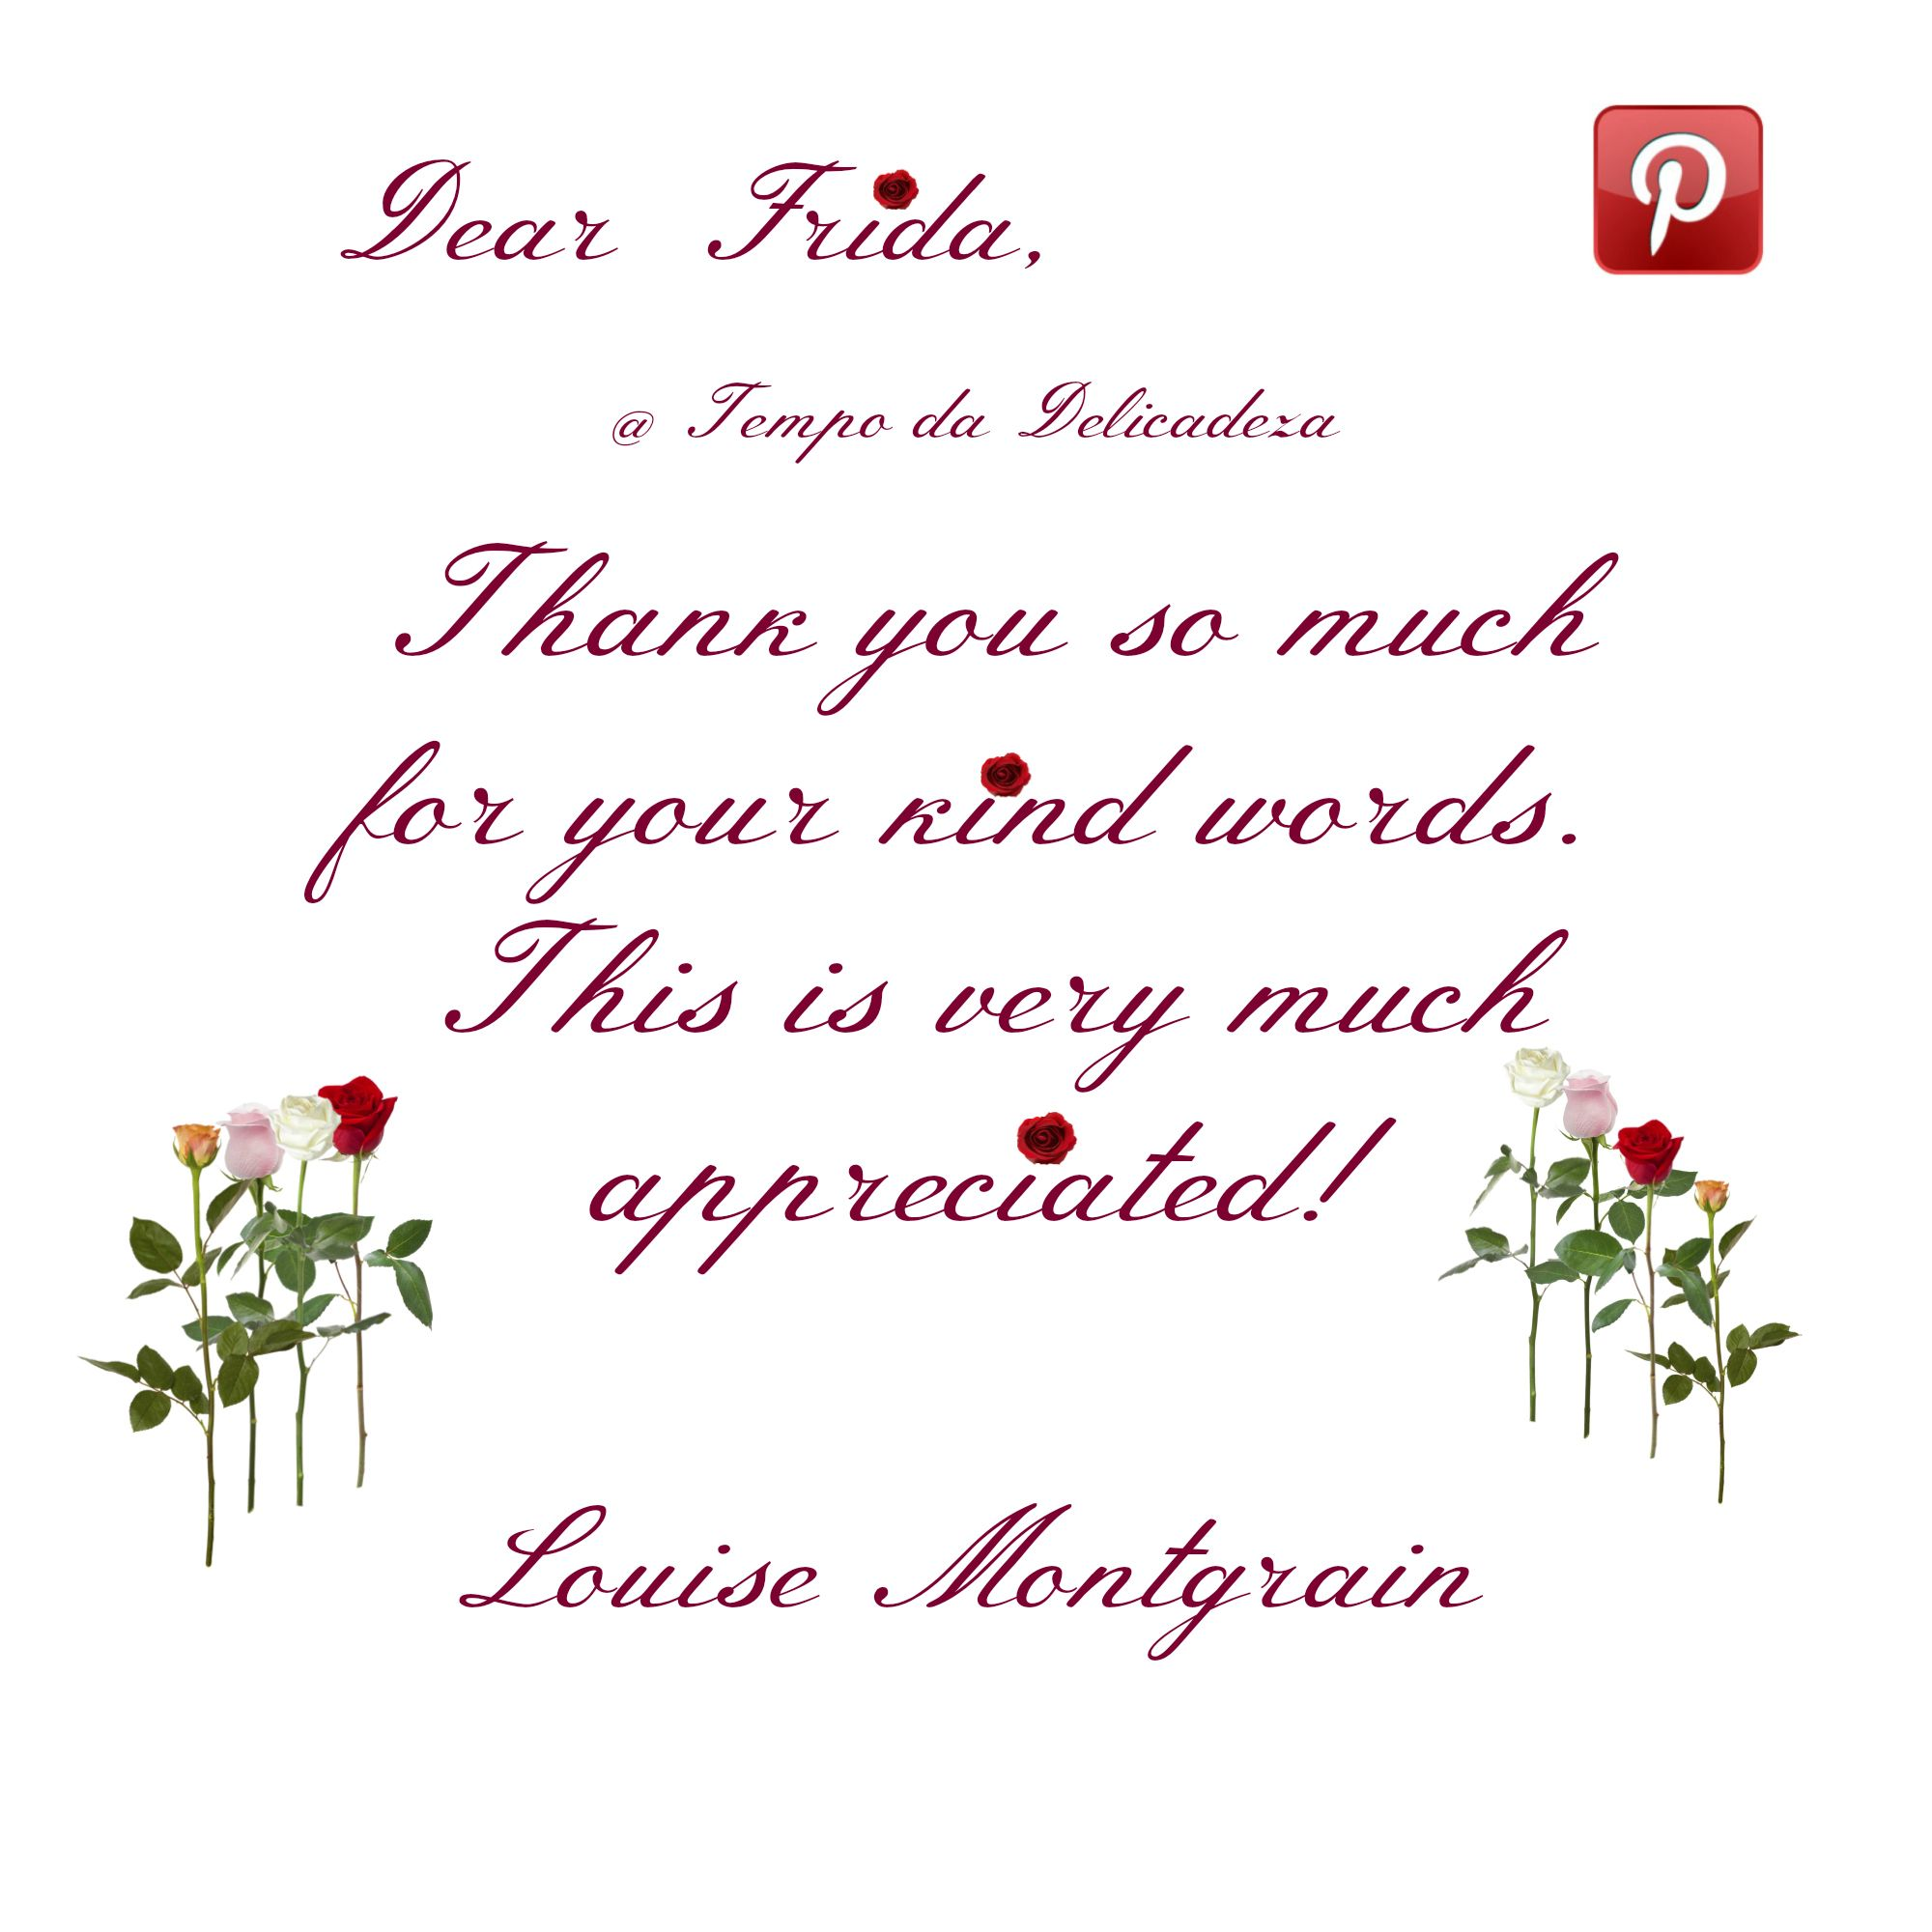 Thank You! @fridar Pinterest wouldn't be the same if it weren't for kind people like you! Sincerely! Louise Montgrain